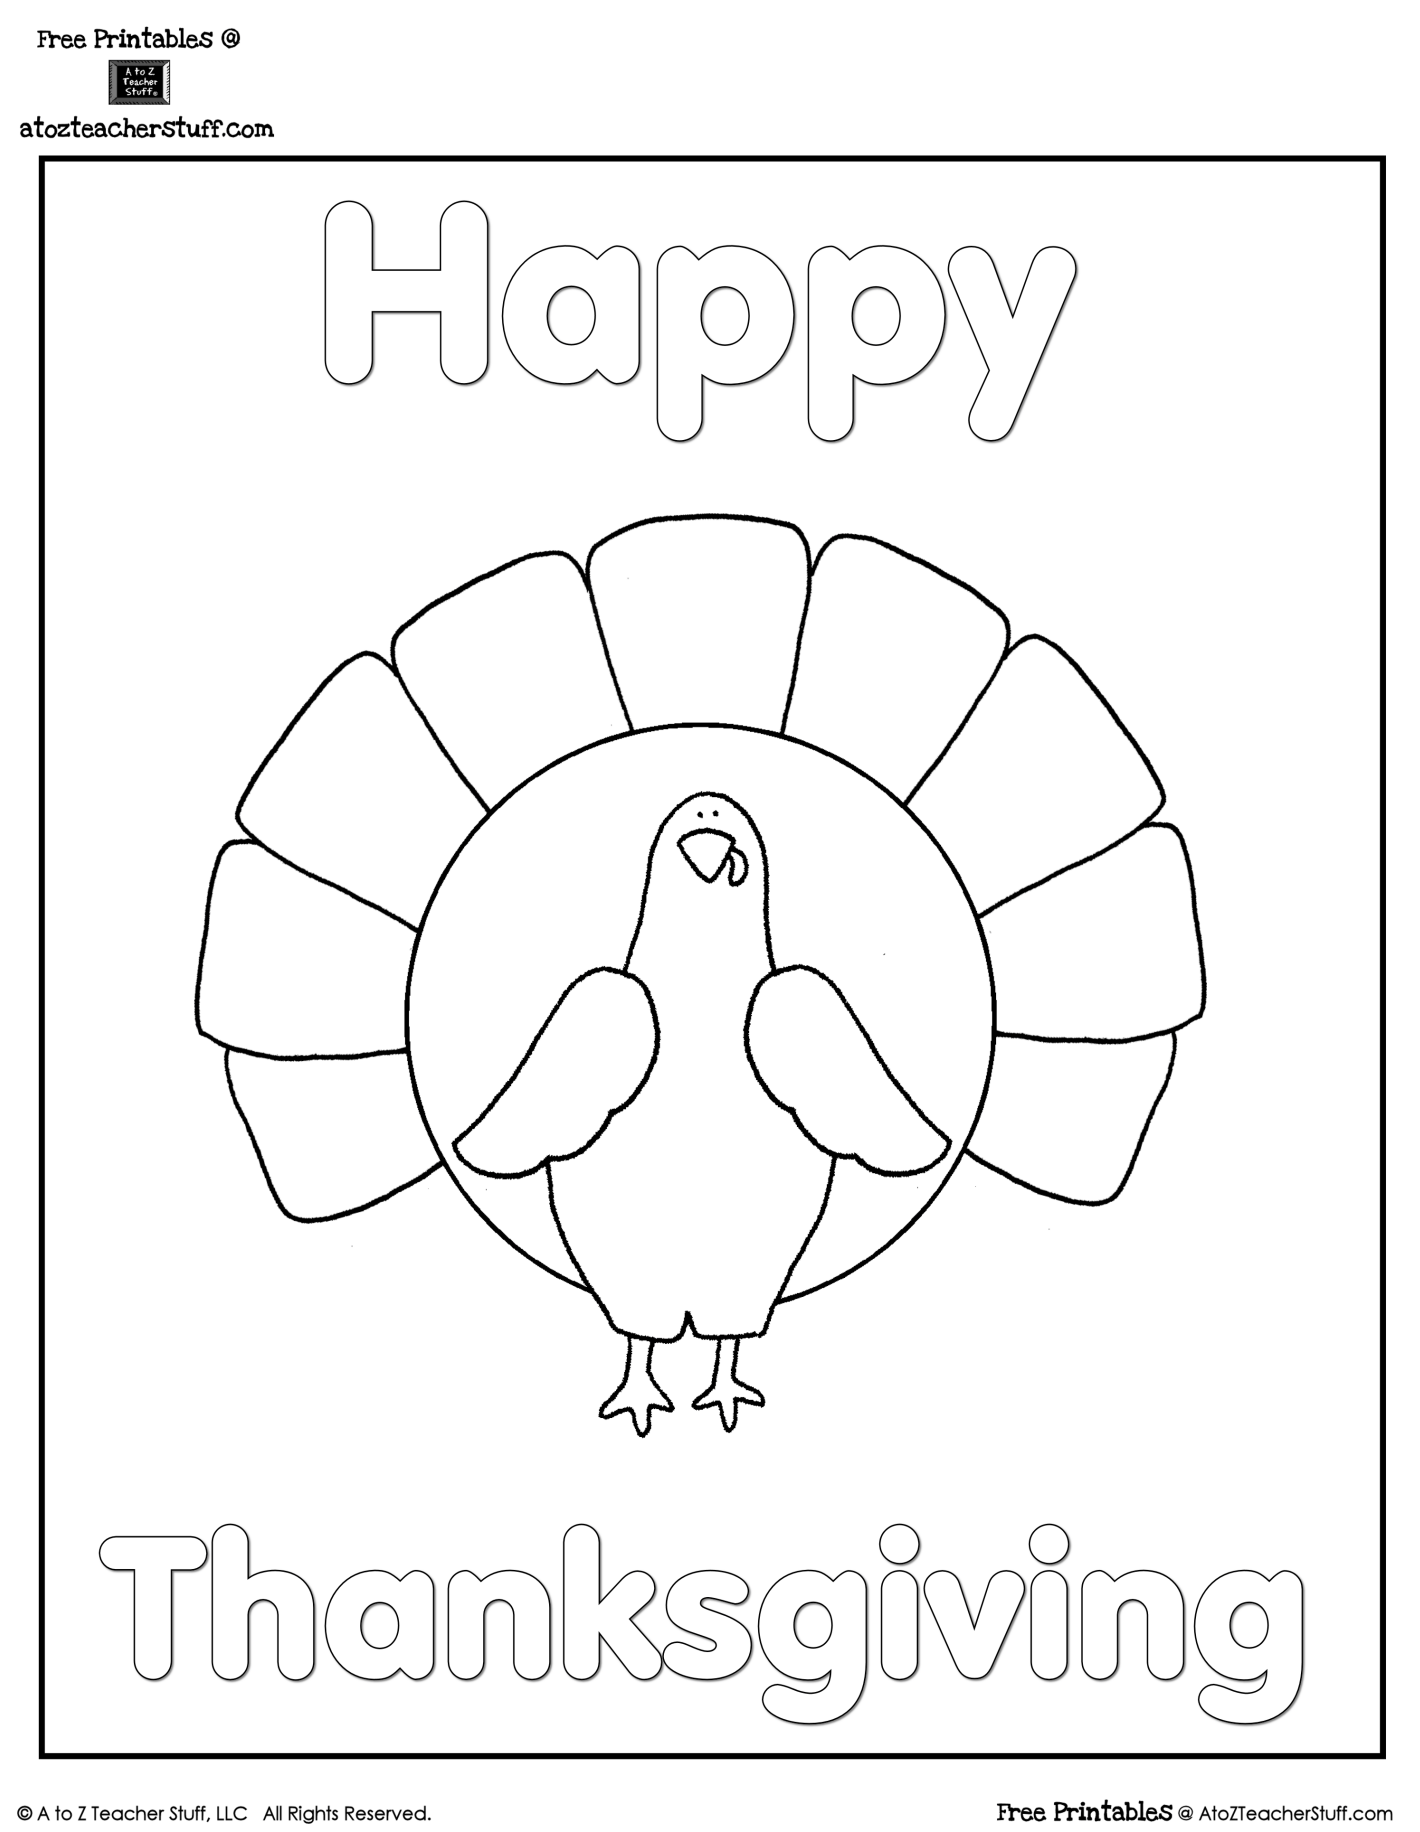 Free Thanksgiving Turkey Coloring Page Thanksgiving Coloring Pages Turkey Coloring Pages Free Thanksgiving Coloring Pages [ 1832 x 1420 Pixel ]